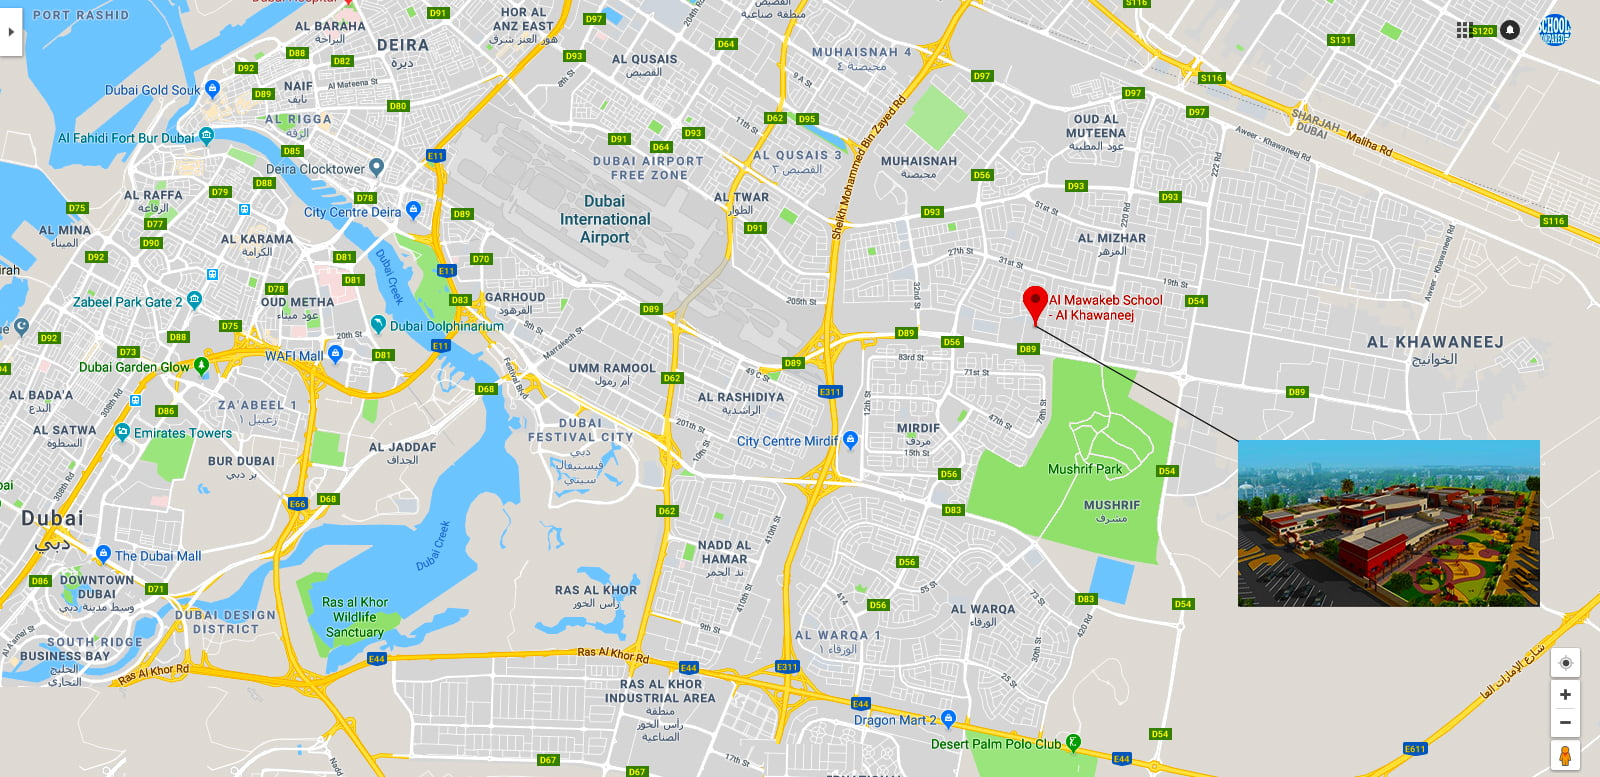 Map showing the location of the planned Al Mawakeb School Al Khawaneej to open in September 2018